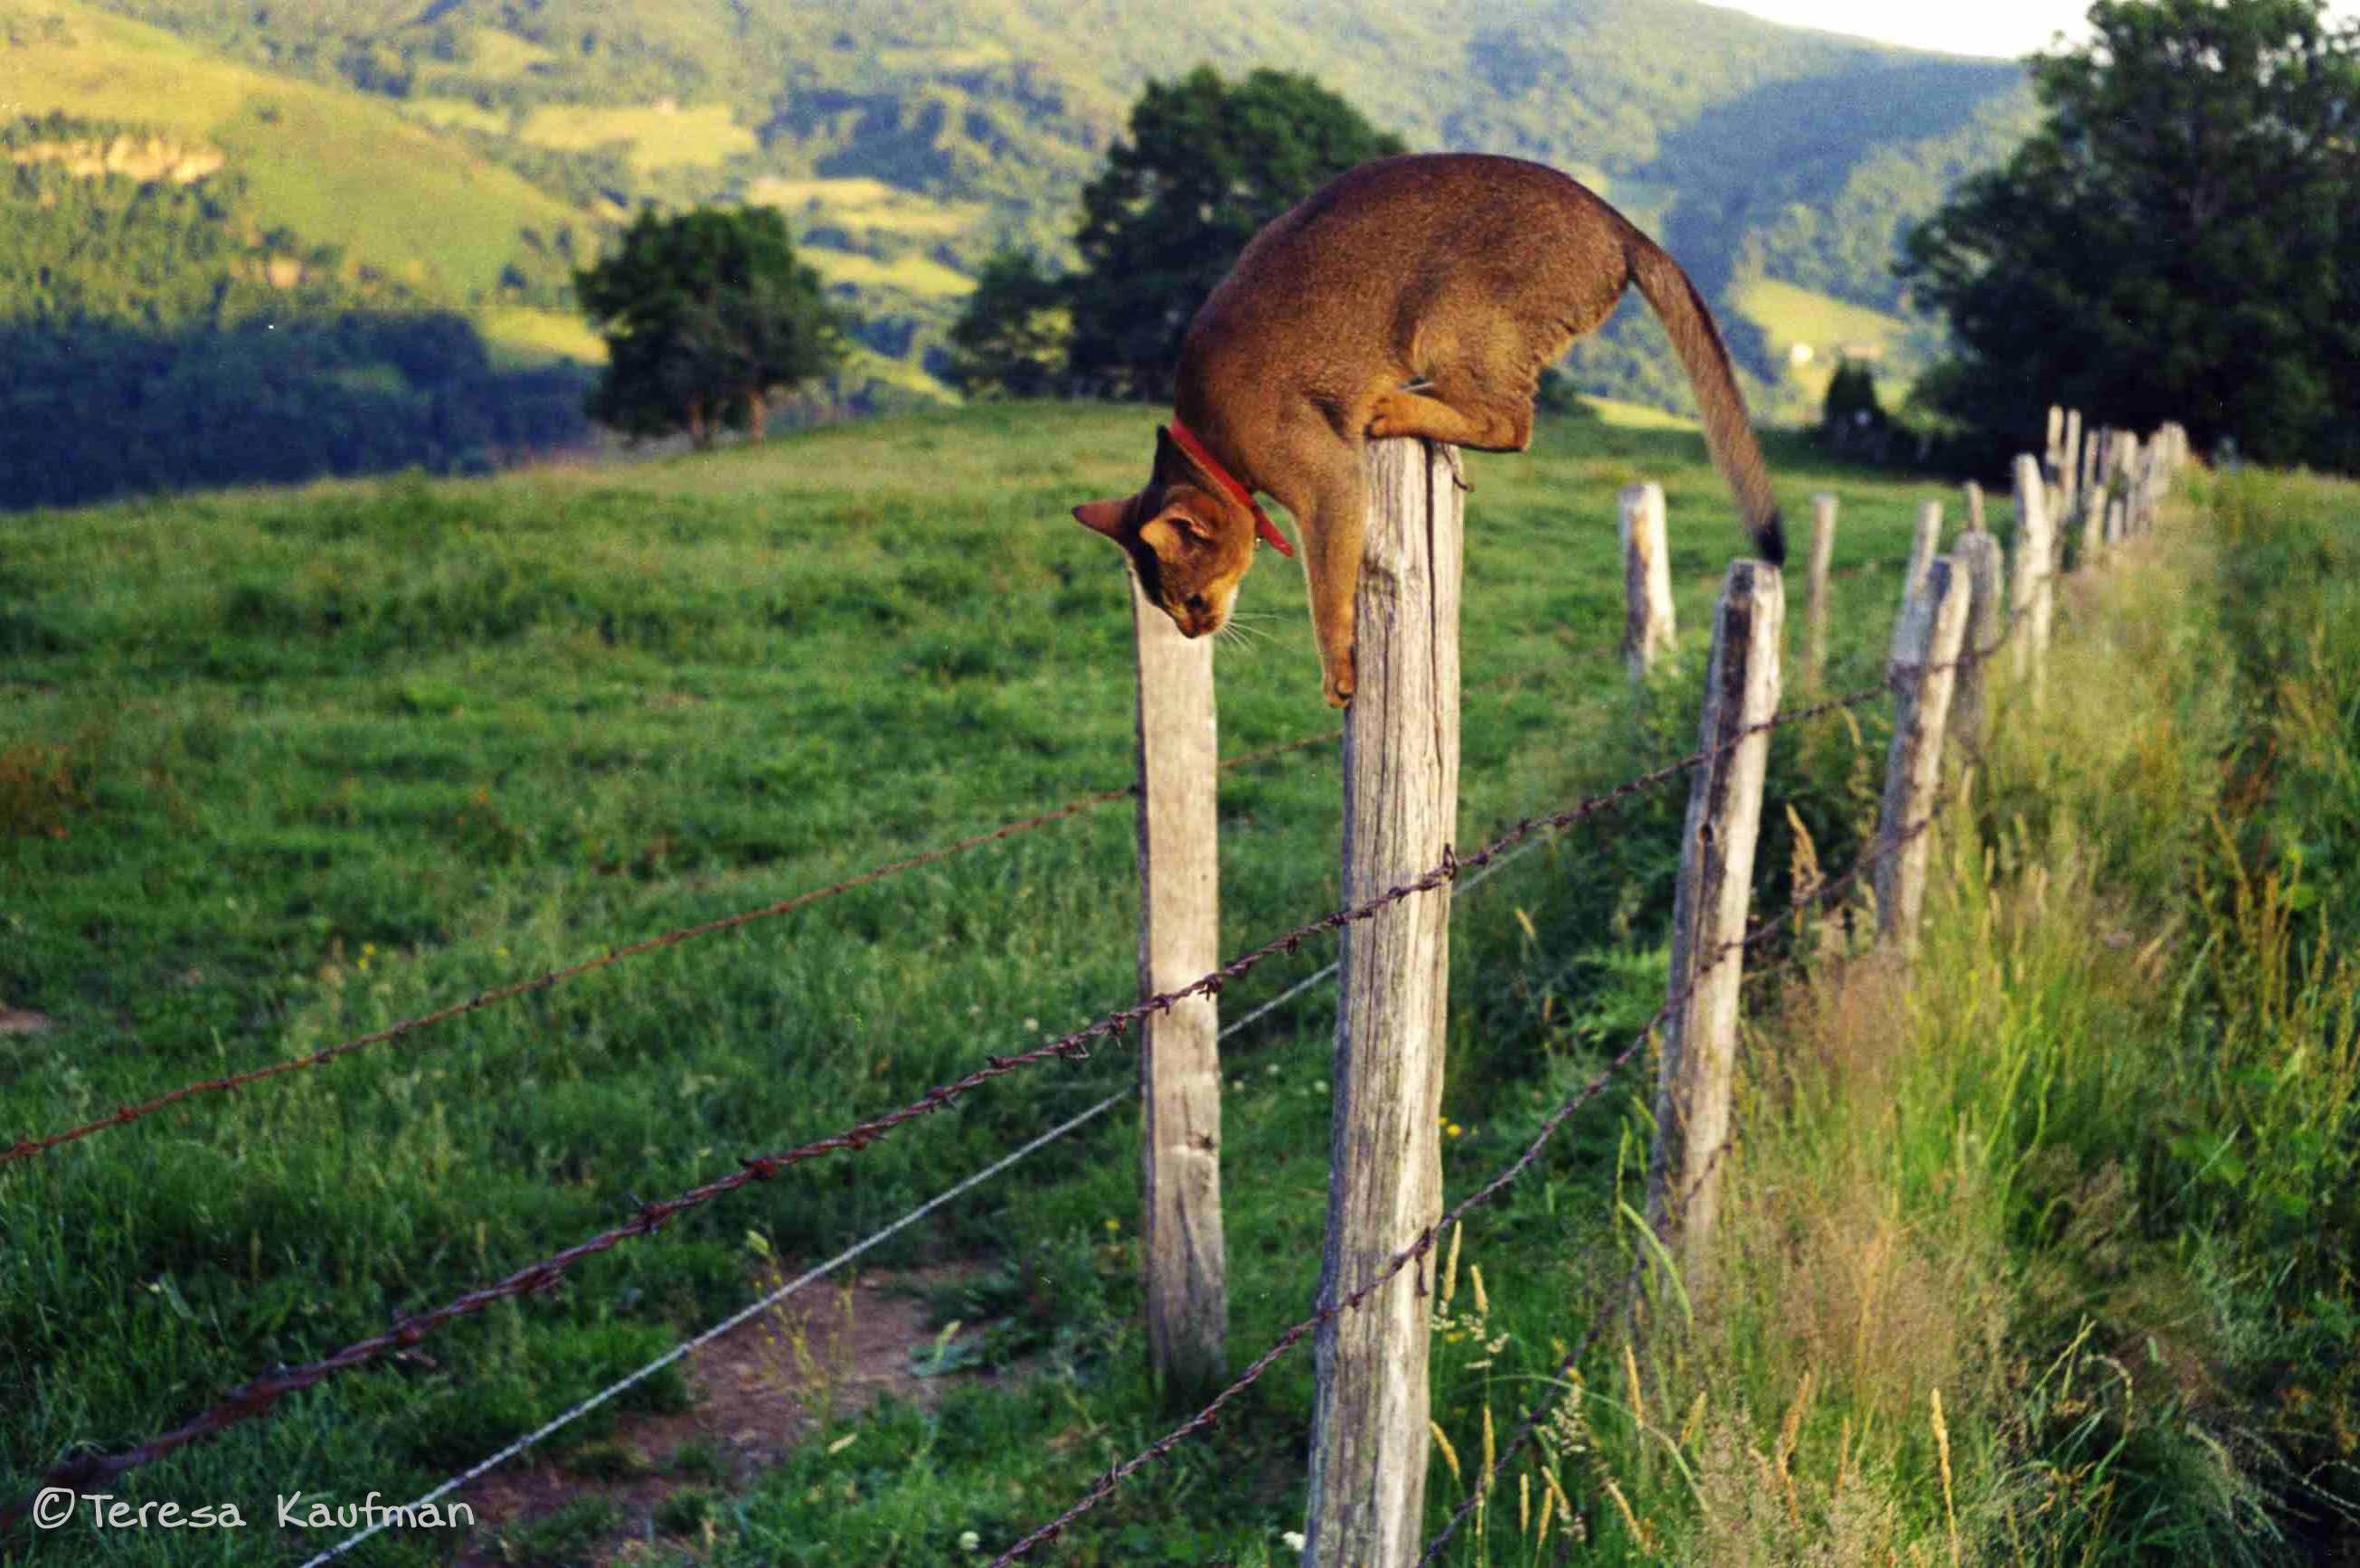 cat climbing fence in rural France